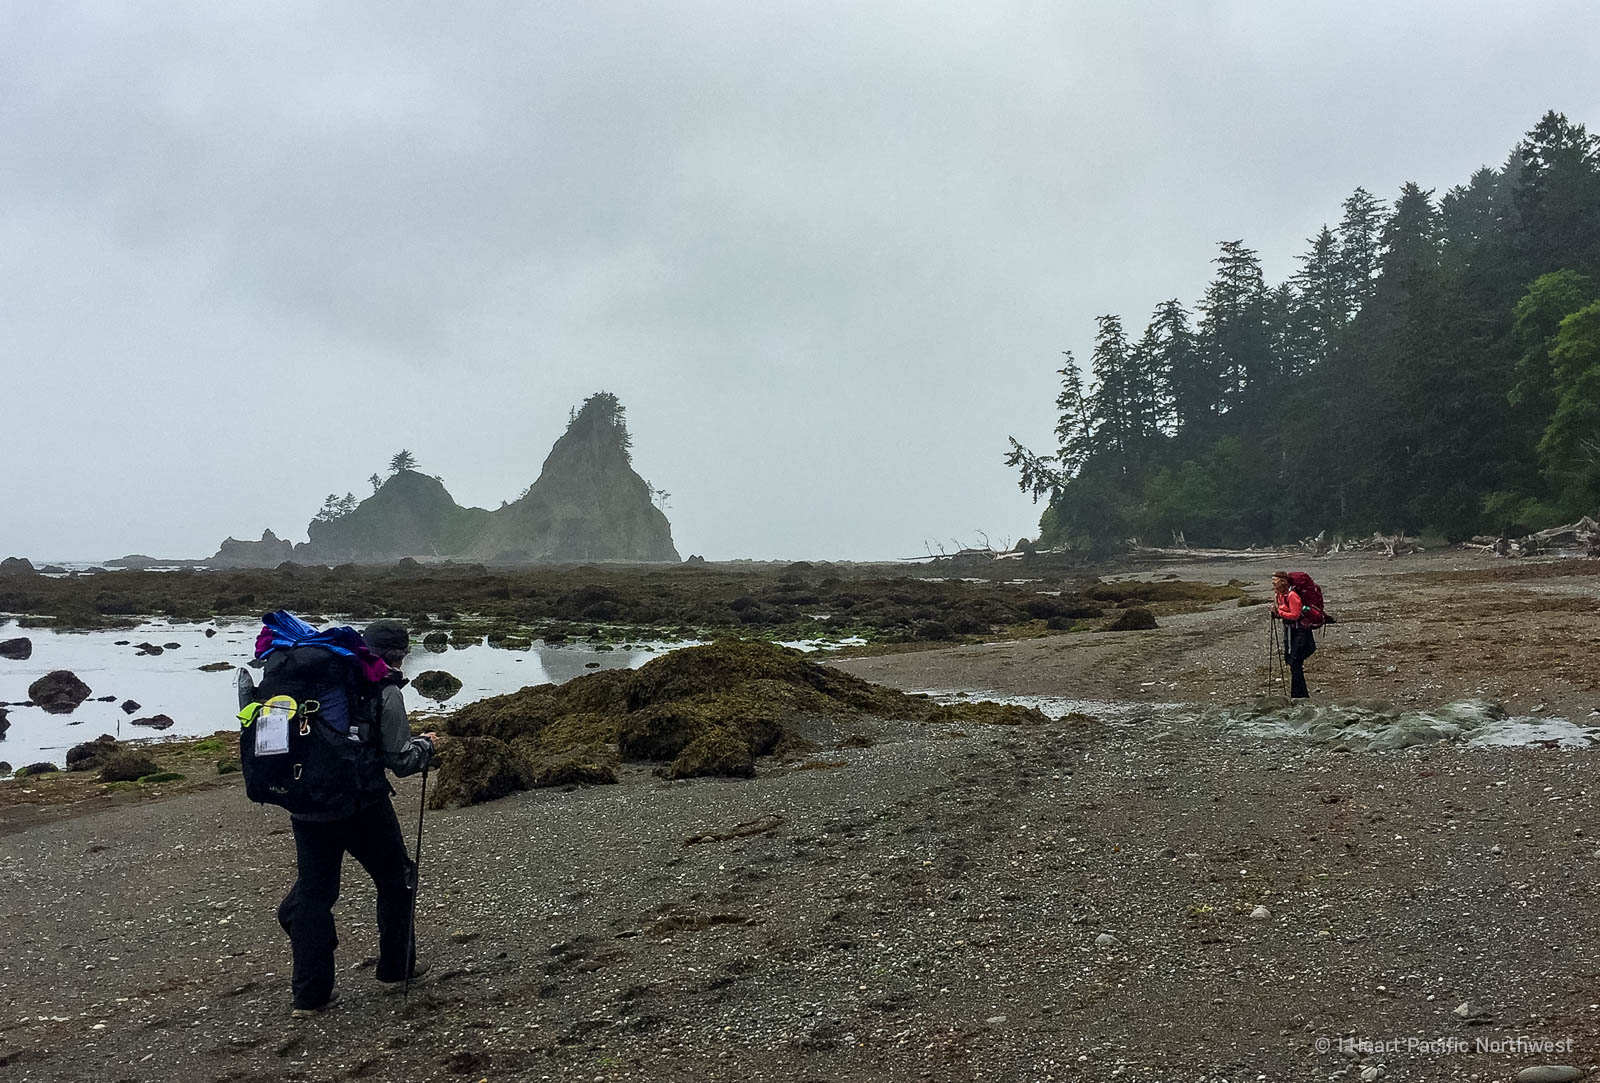 Olympic Coast - Rialto Beach to Chilean Memorial backpacking trip